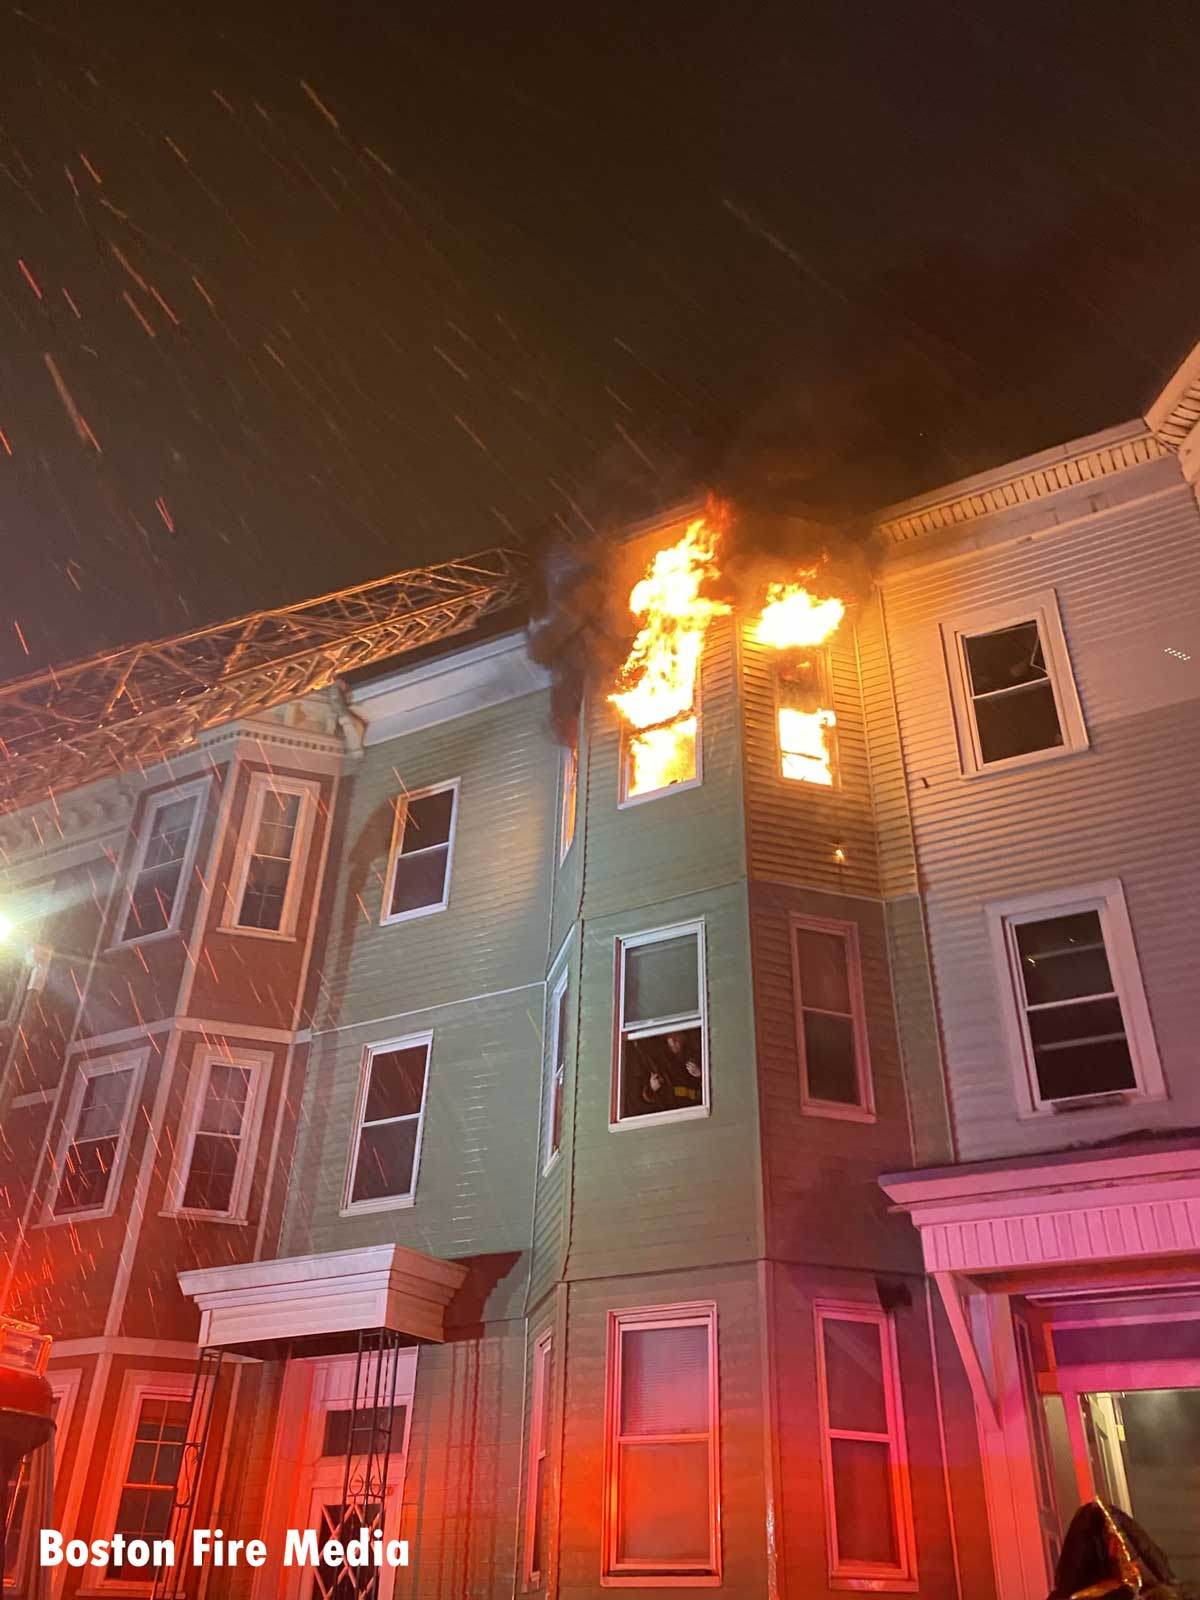 Fire showing from the upper floor of an attached building